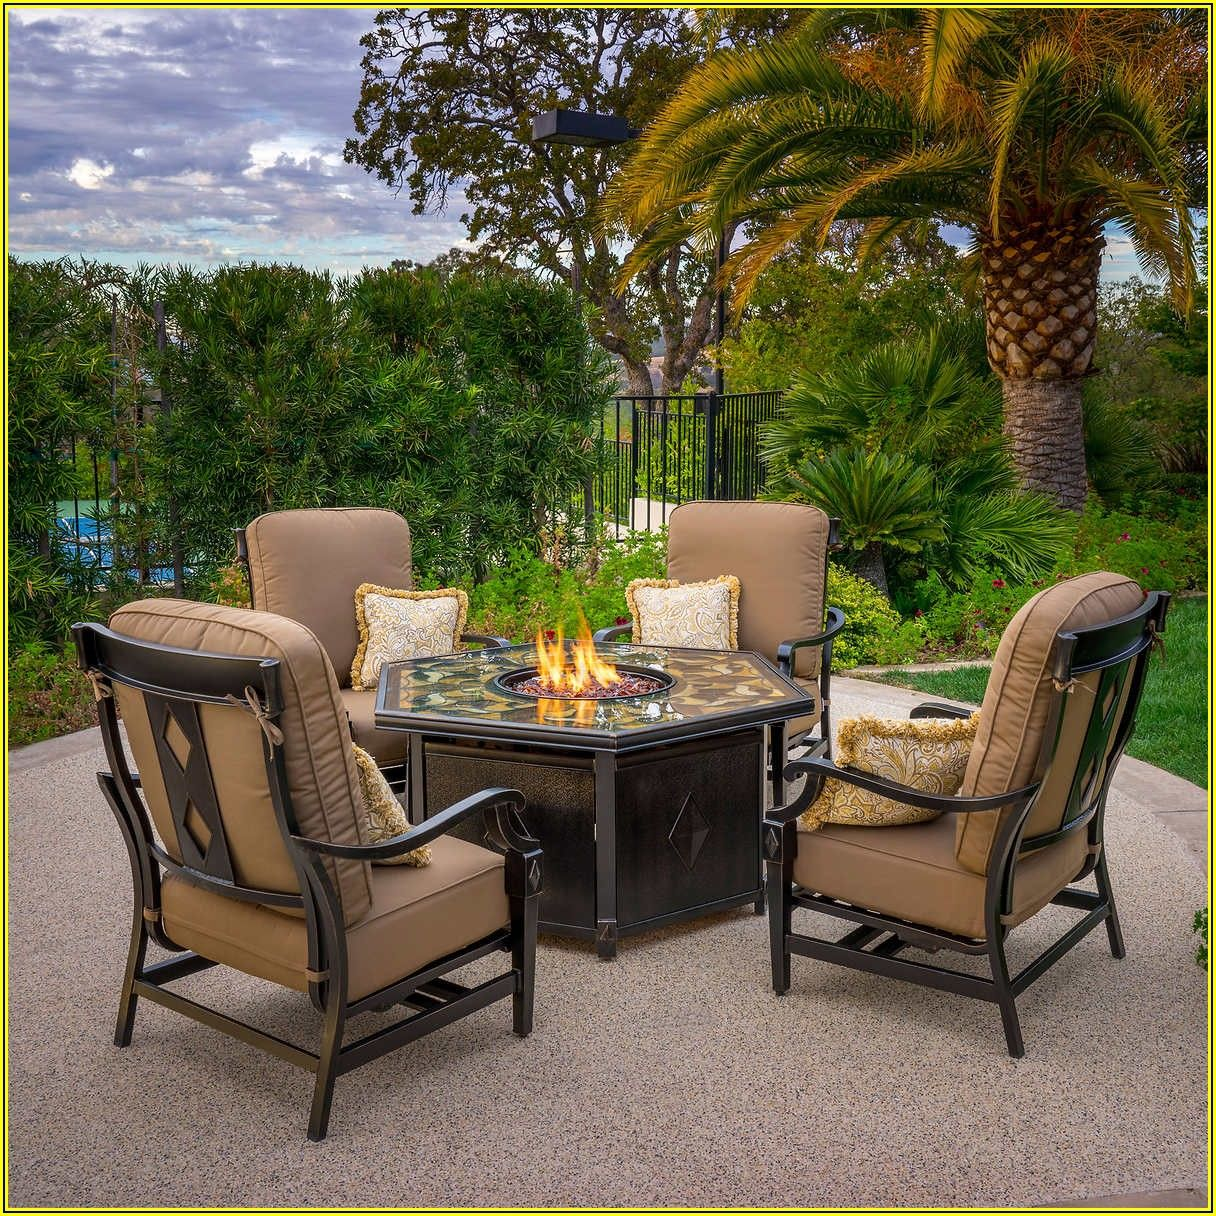 Small Patio Furniture With Fire Pit